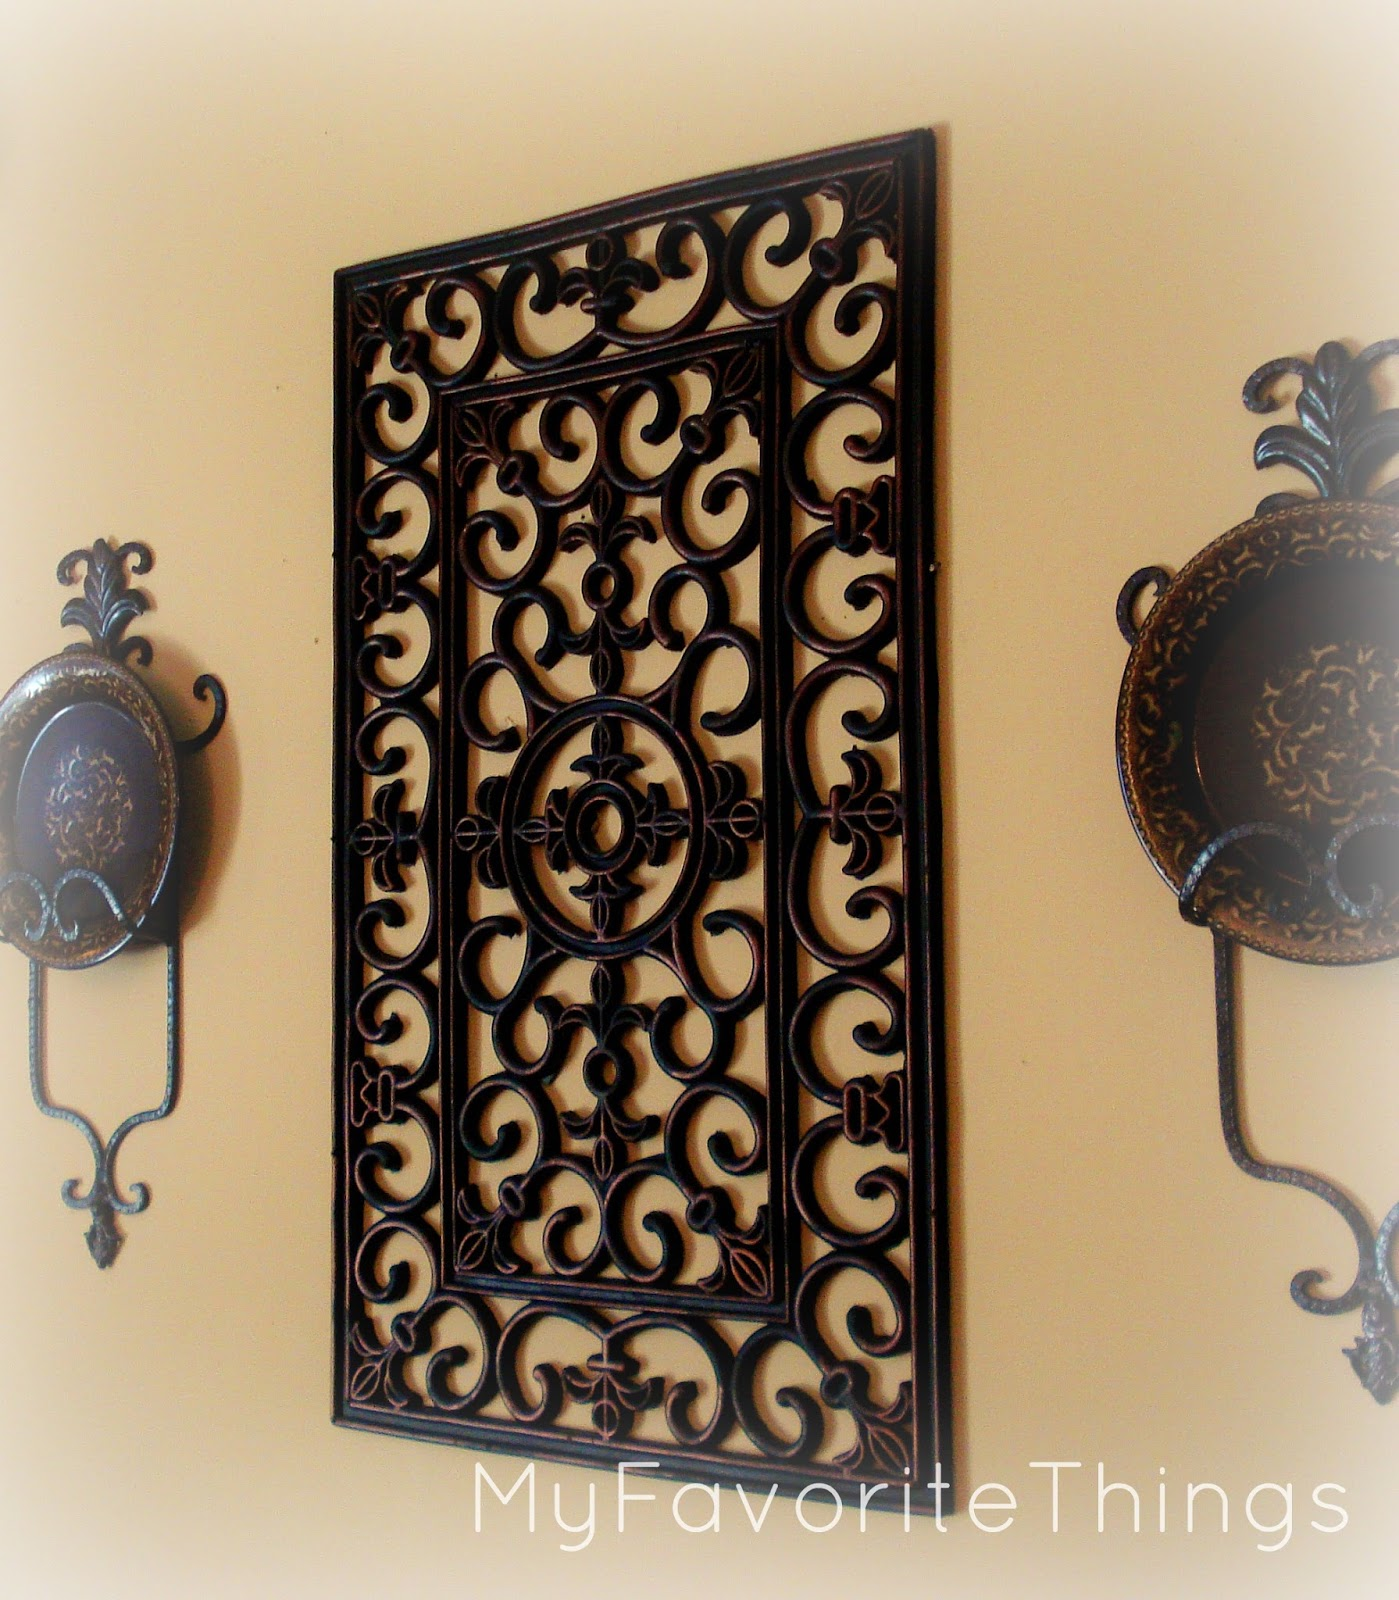 My favorite things wrought iron wall art wrought iron wall art amipublicfo Gallery